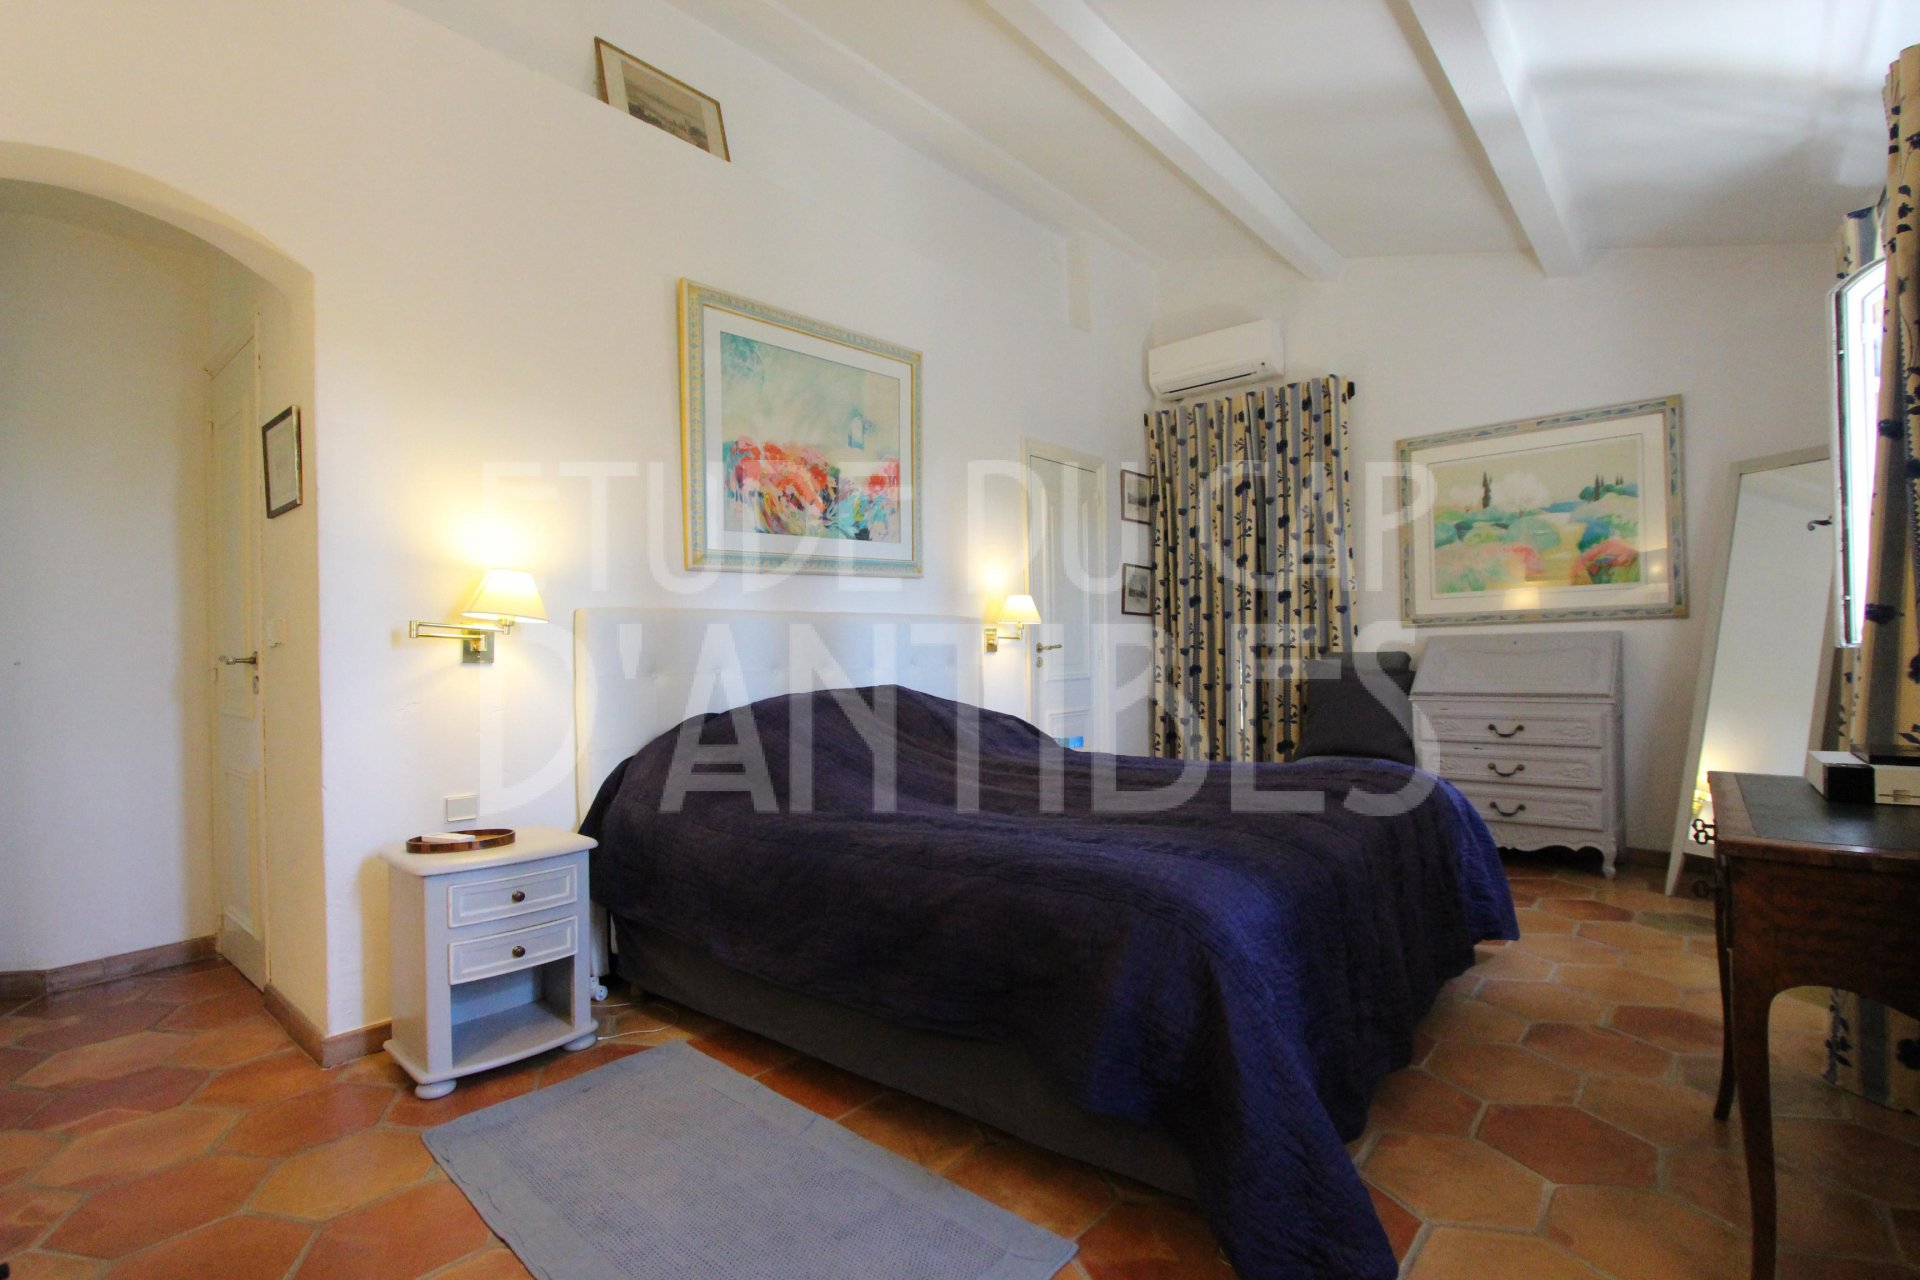 Affitto stagionale Casale - Antibes